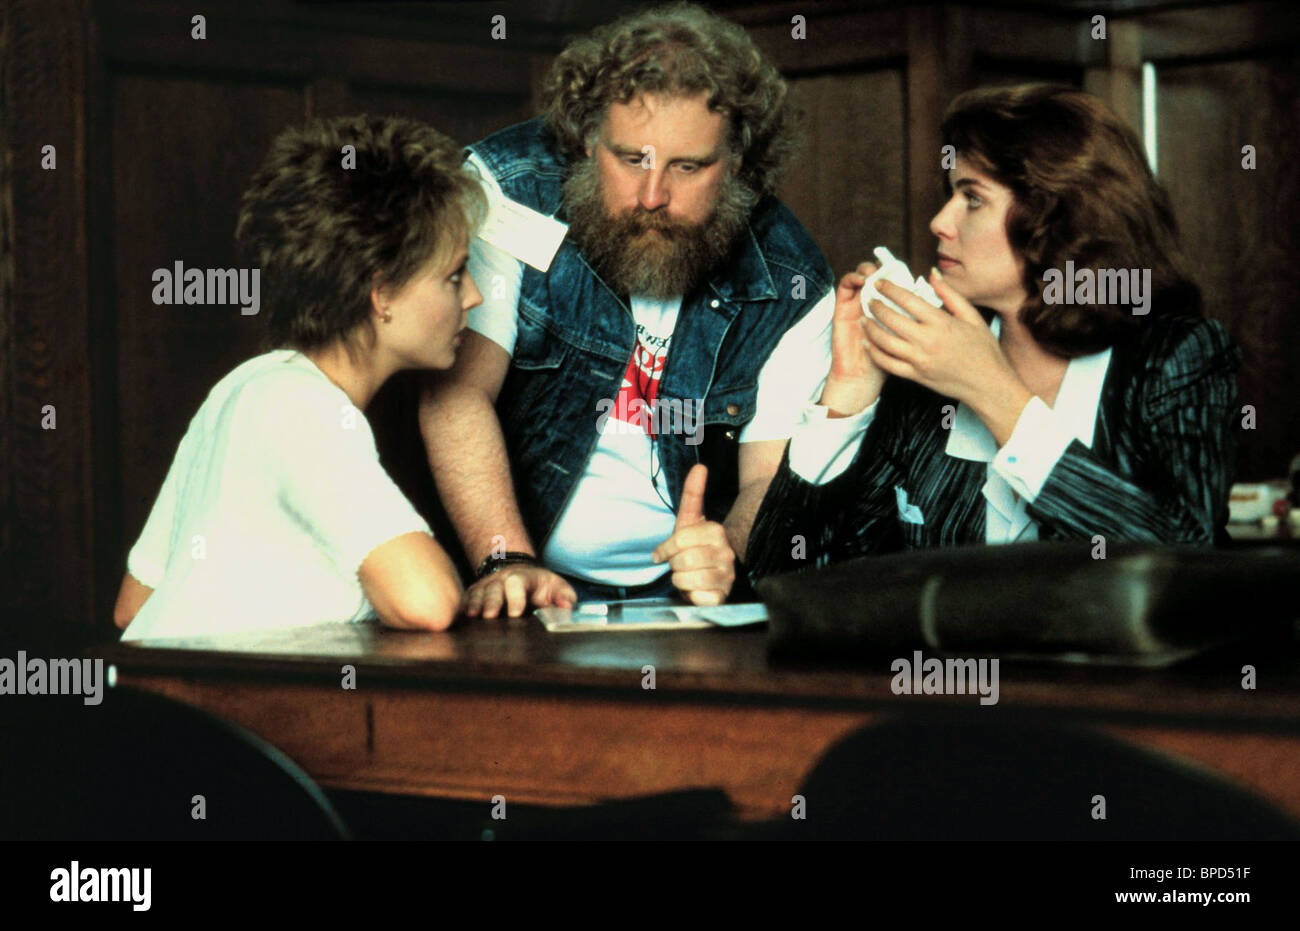 accused 1988 jodie stock photos accused 1988 jodie stock images jodie foster jonathan kaplan kelly mcgillis the accused 1988 stock image